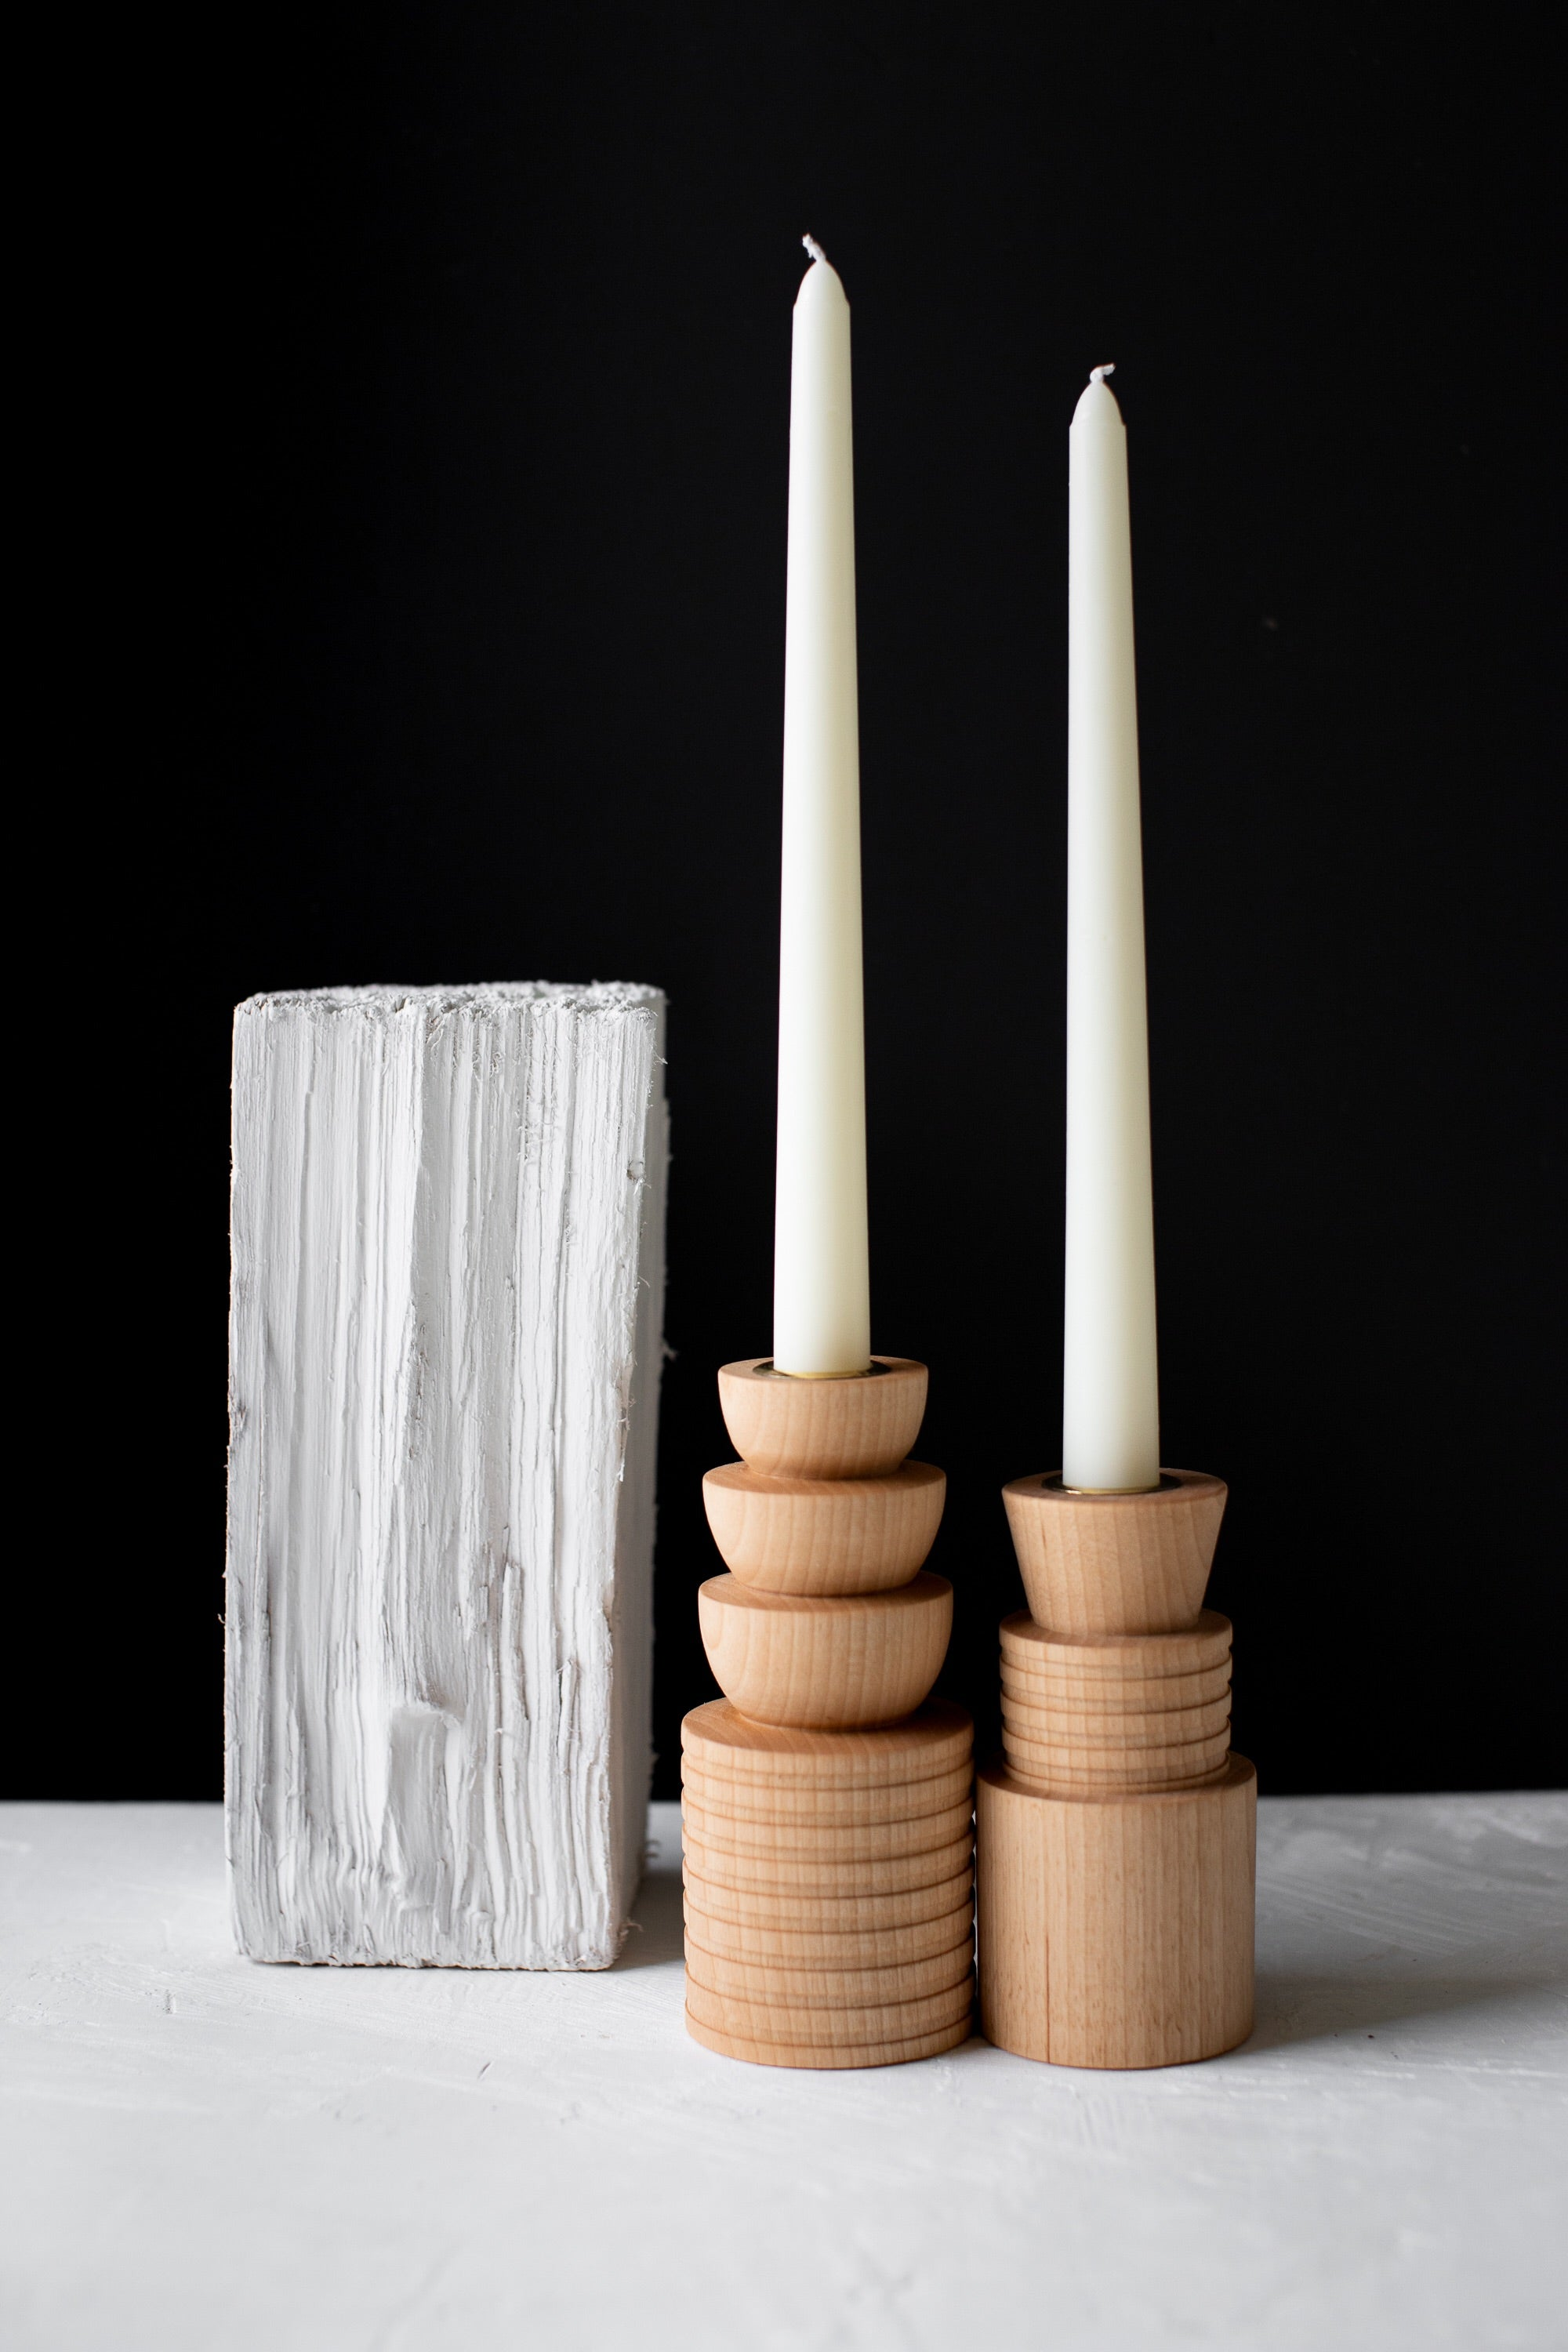 Elise McLauchlan Wooden candle holders